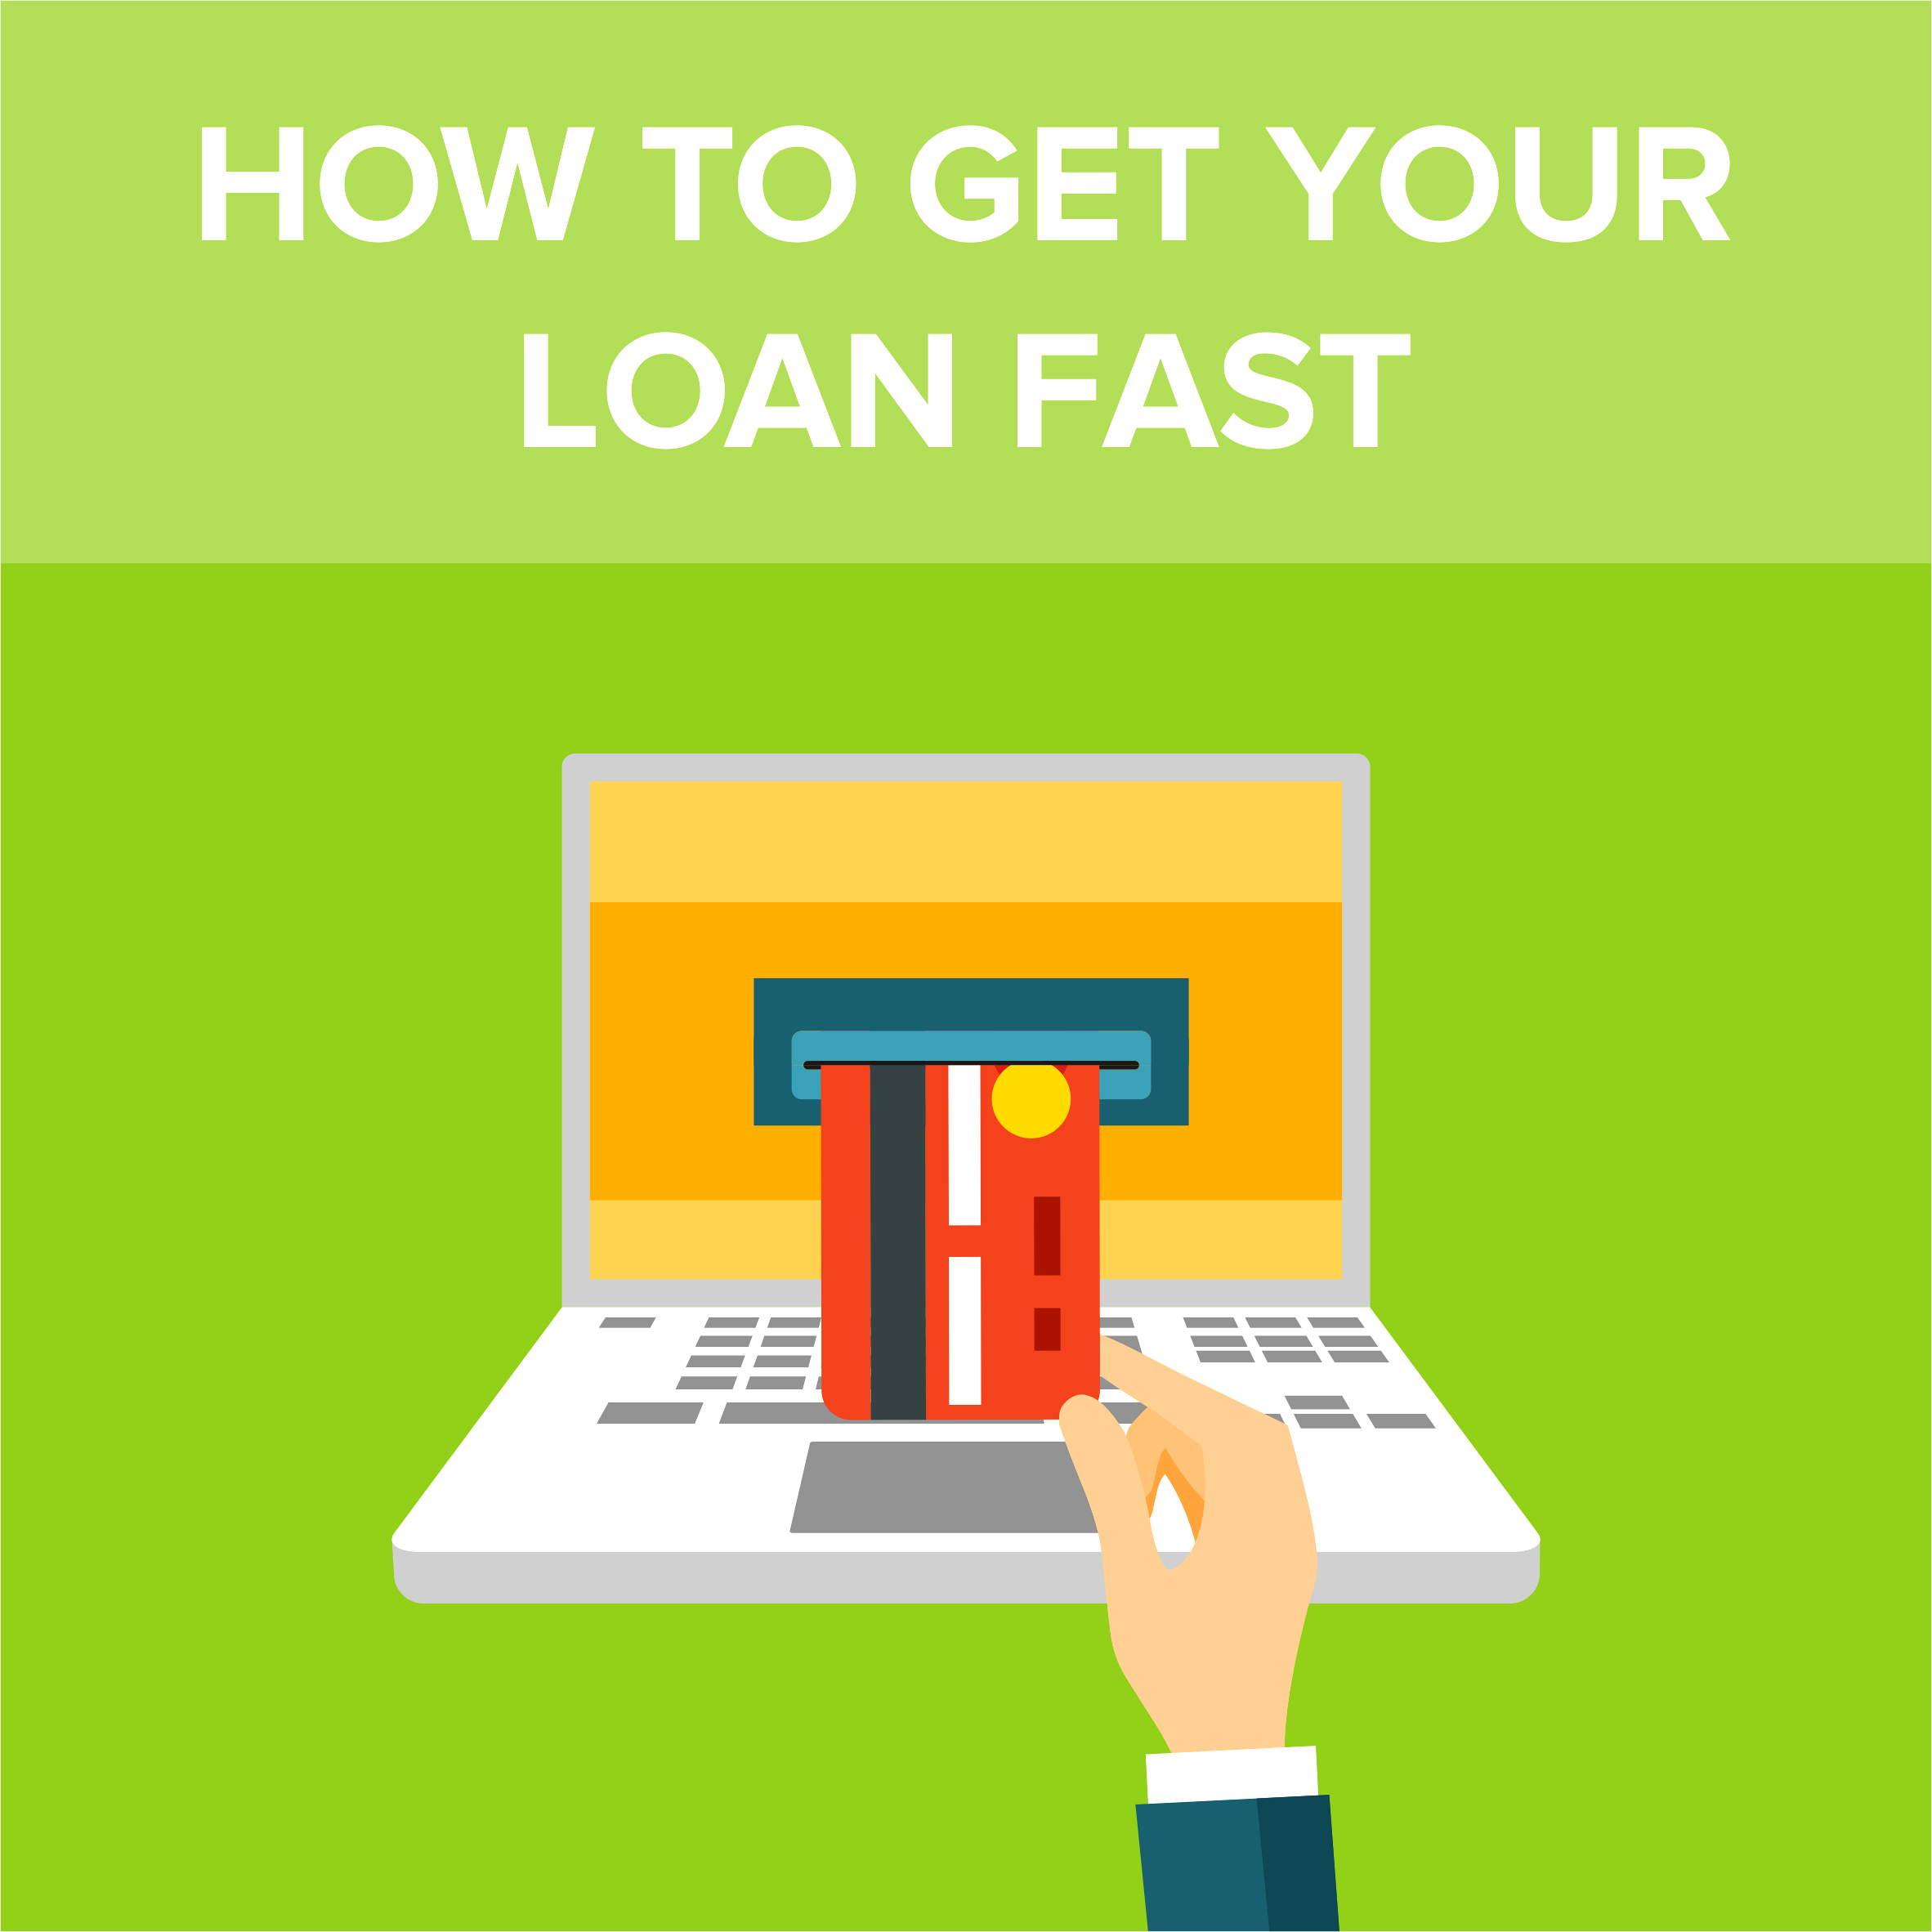 How to Get Your Loan Fast